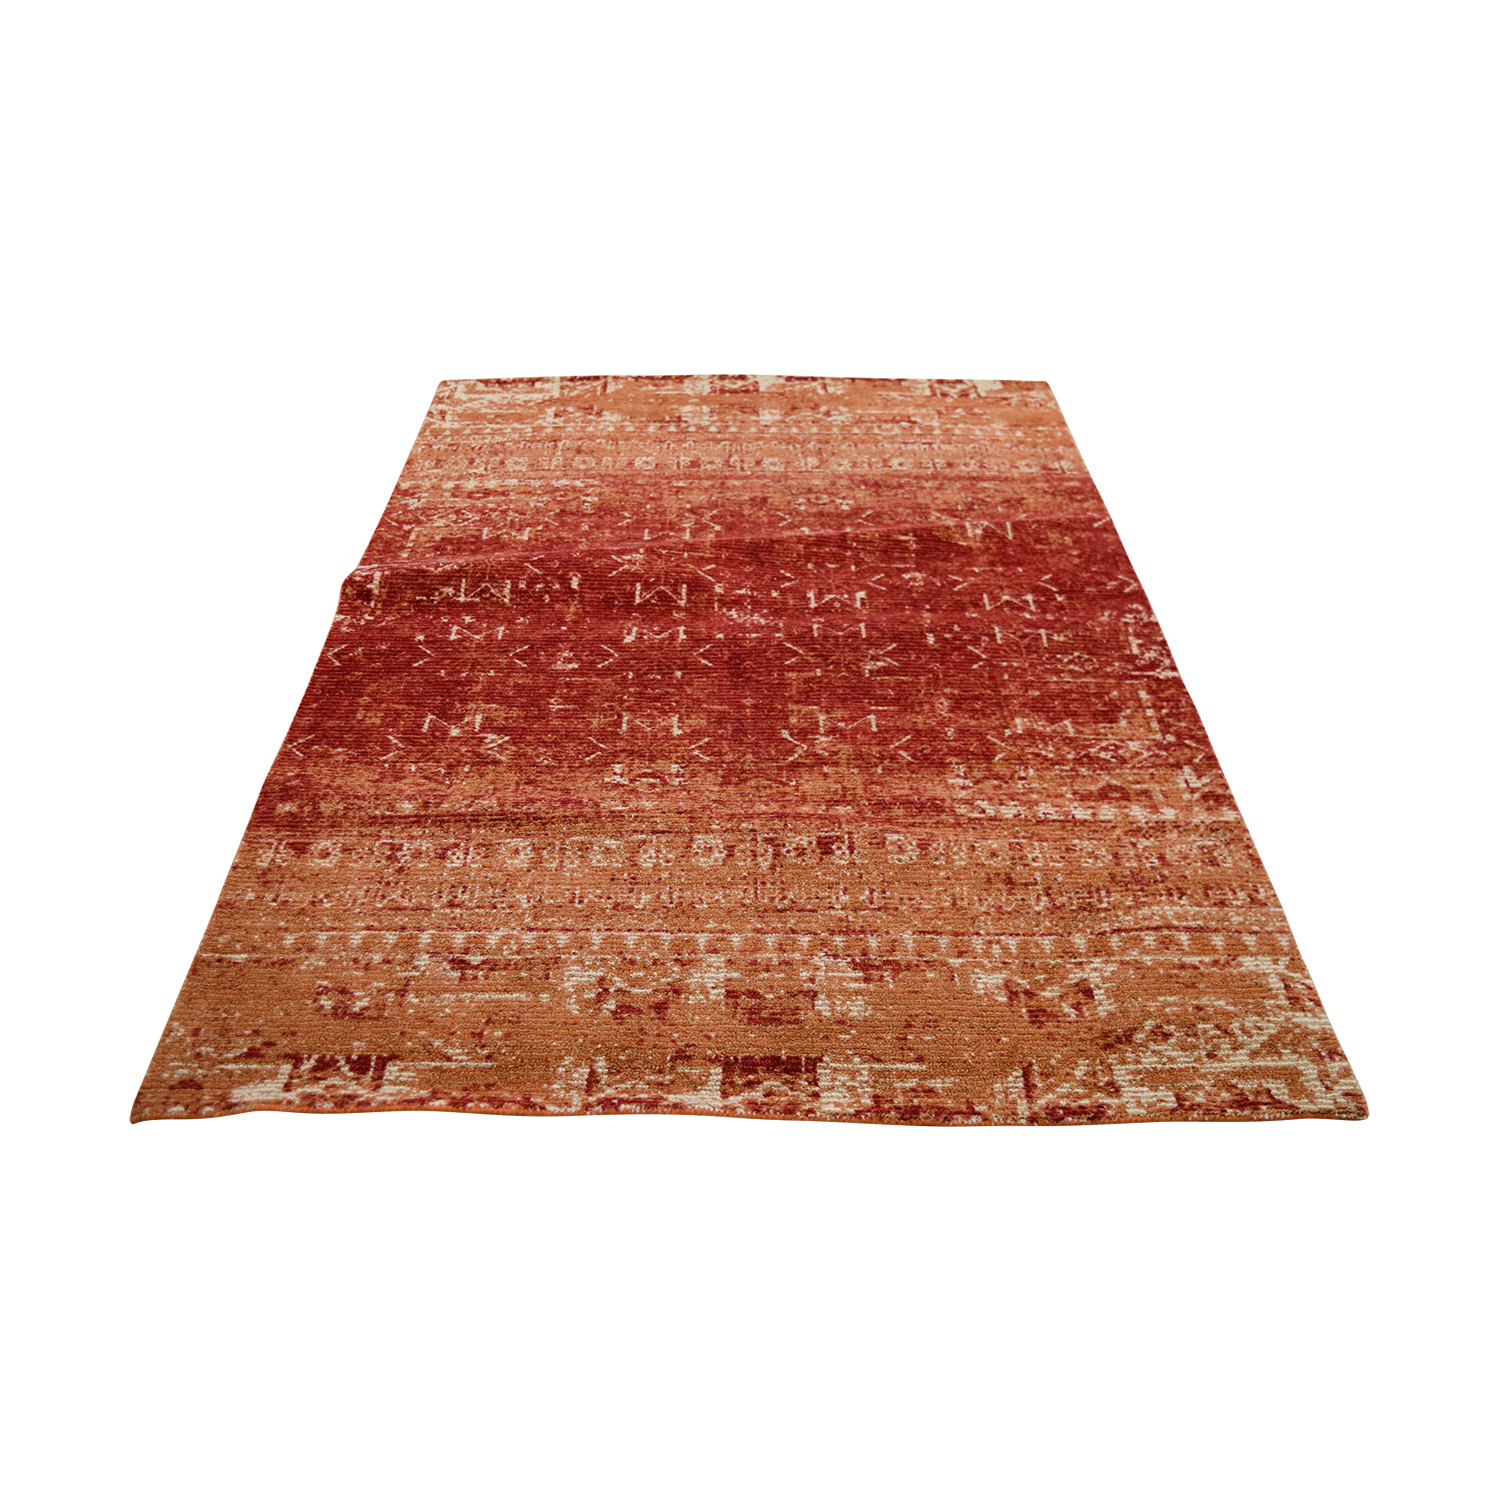 Obeetee Obeetee Red and Beige Wool Rug on sale